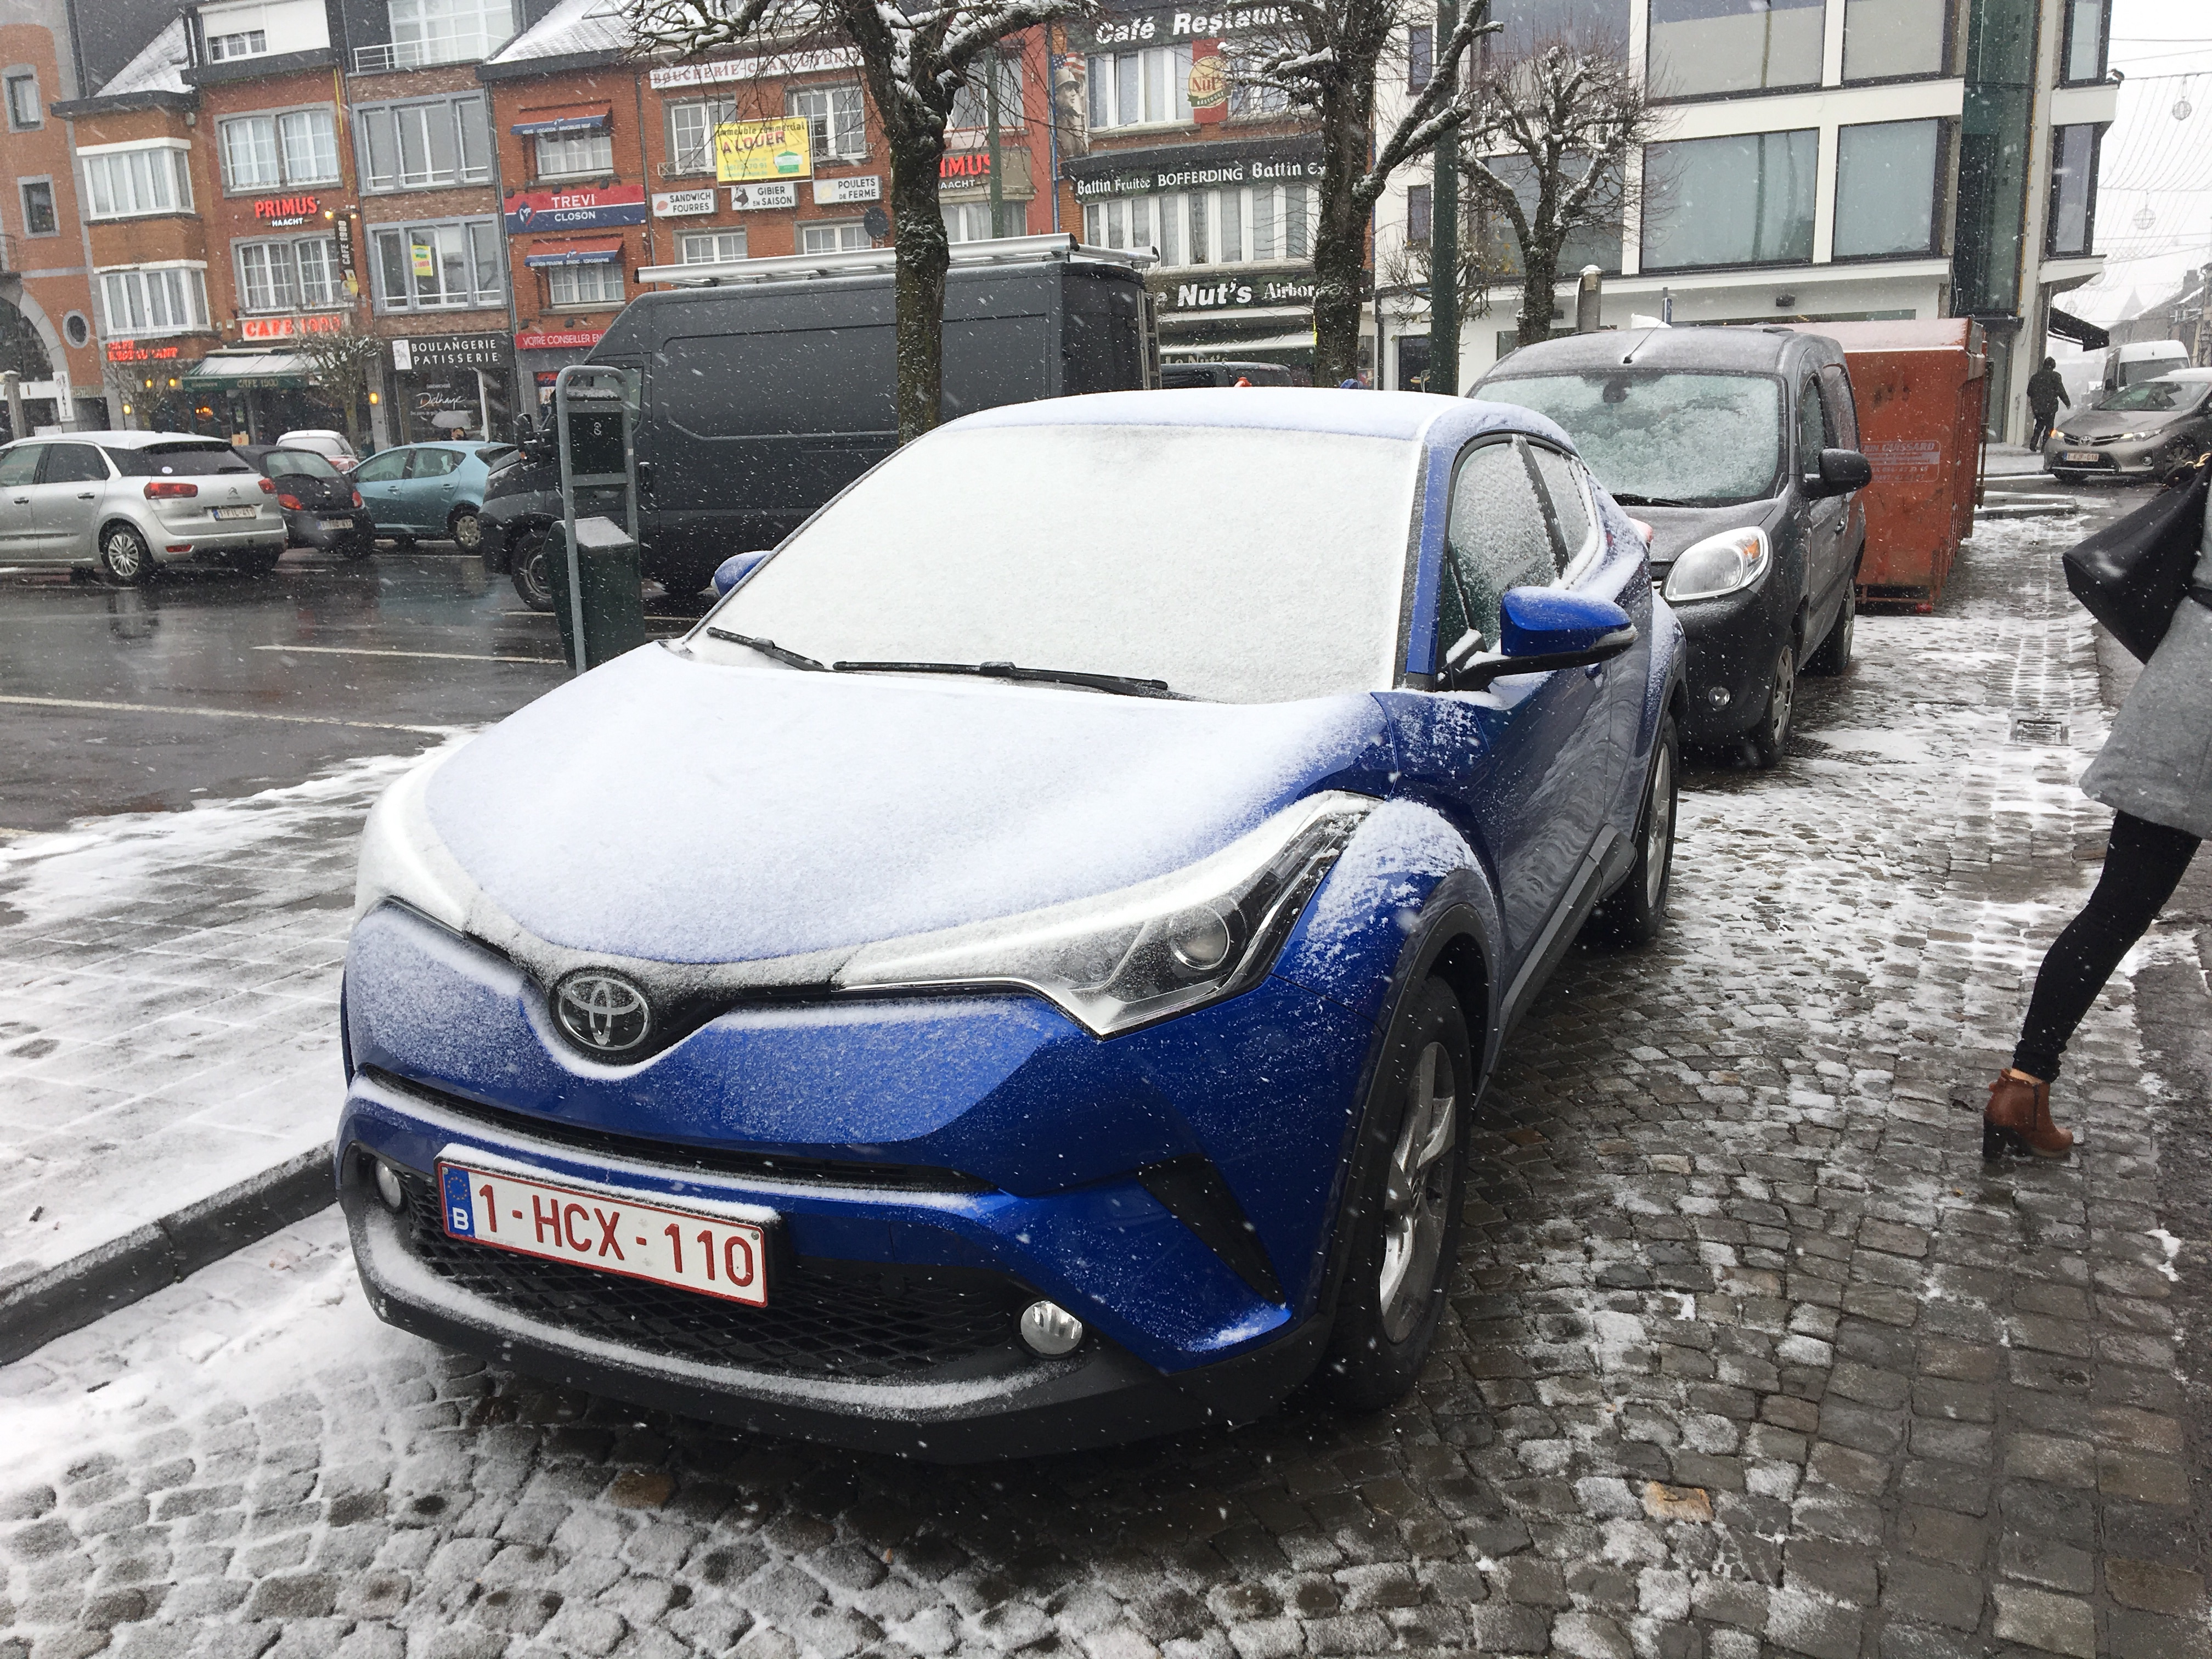 A nice car, covered in snow.